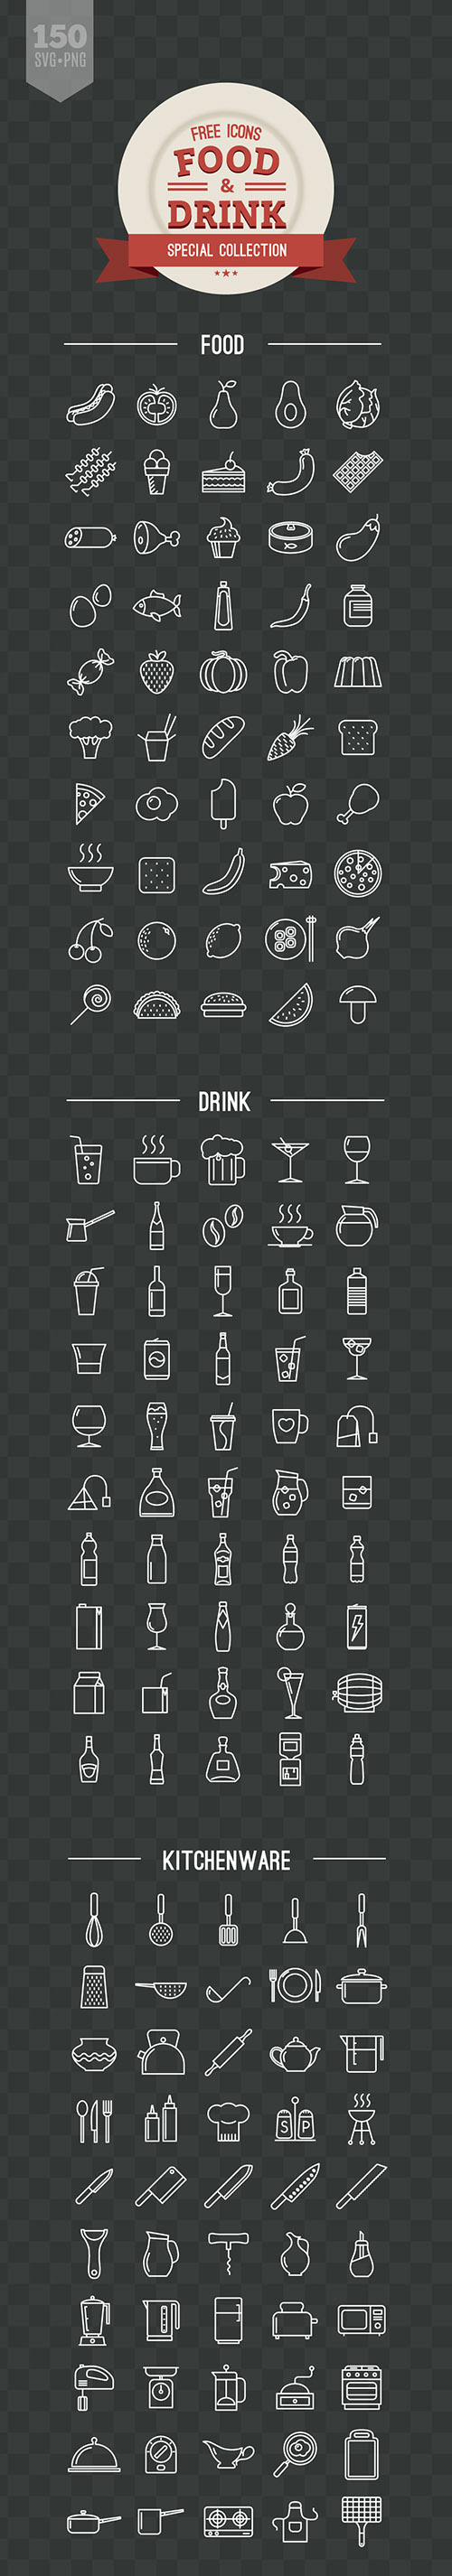 PNG, SVG Vector Icons - 150 Food and Drink Icons 2015